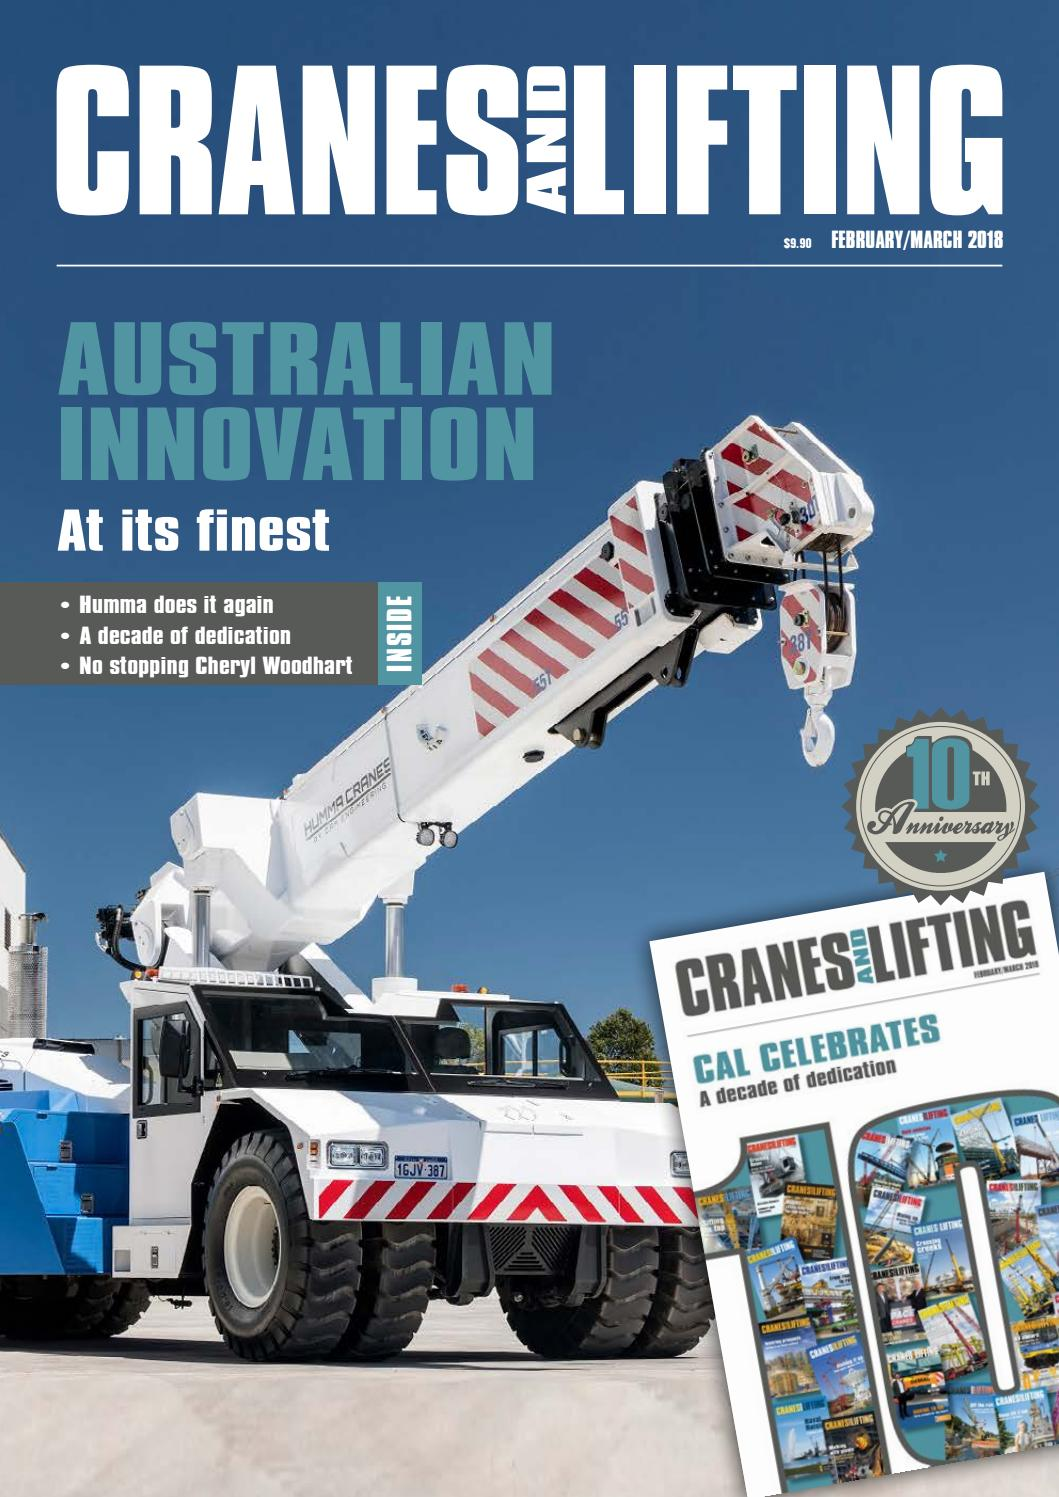 CRANES AND LIFTING: February/March 2018 by Mayfam Media - issuu